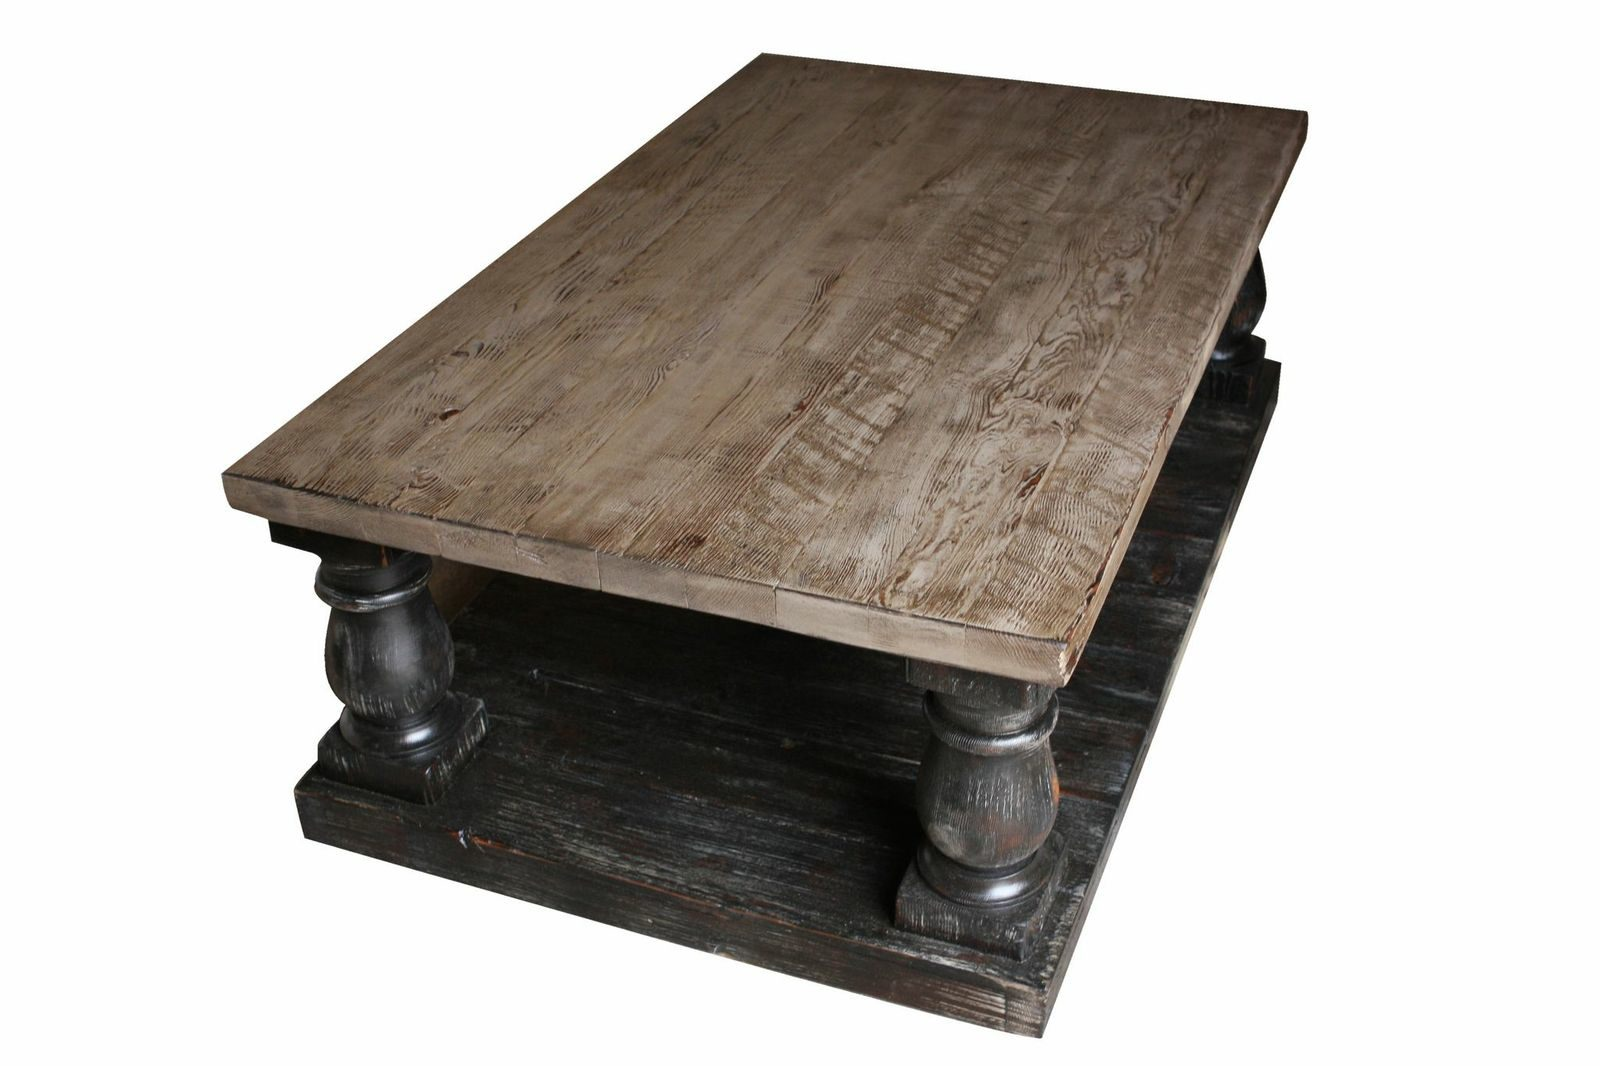 Postobello Coffee Table Built In Reclaimed Wood (View 6 of 10)